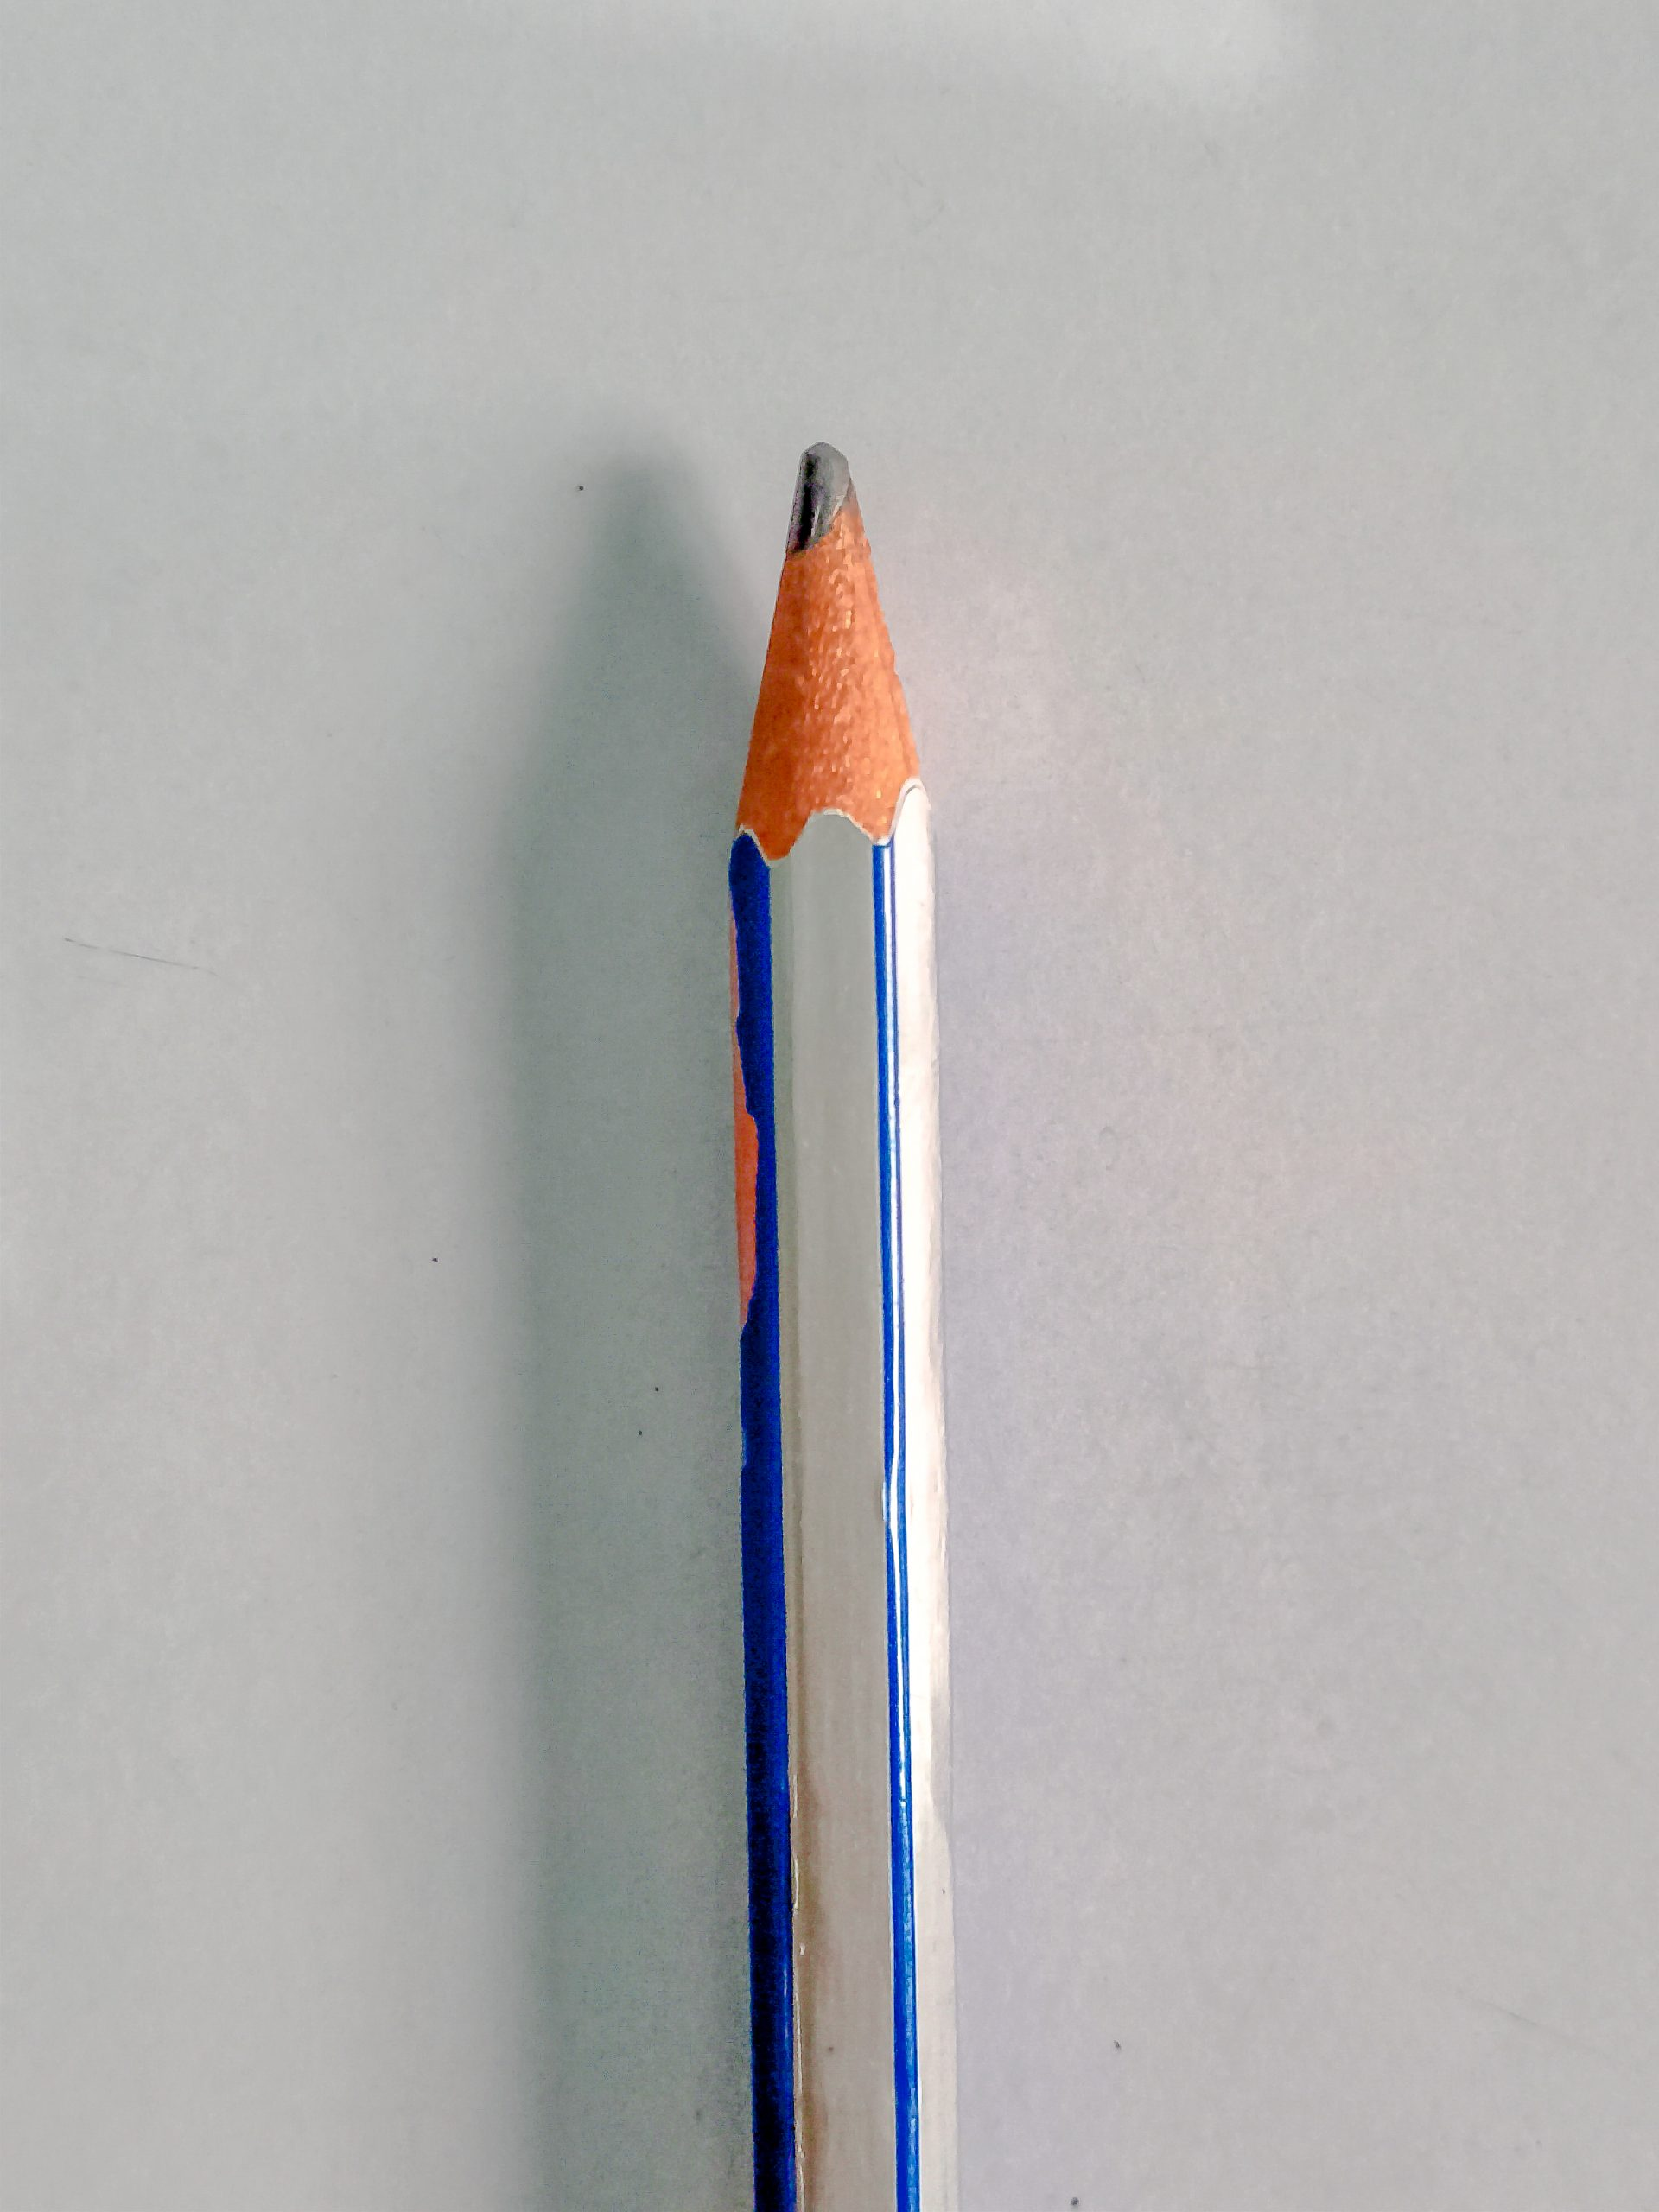 Lead pencil with silver and blue coating